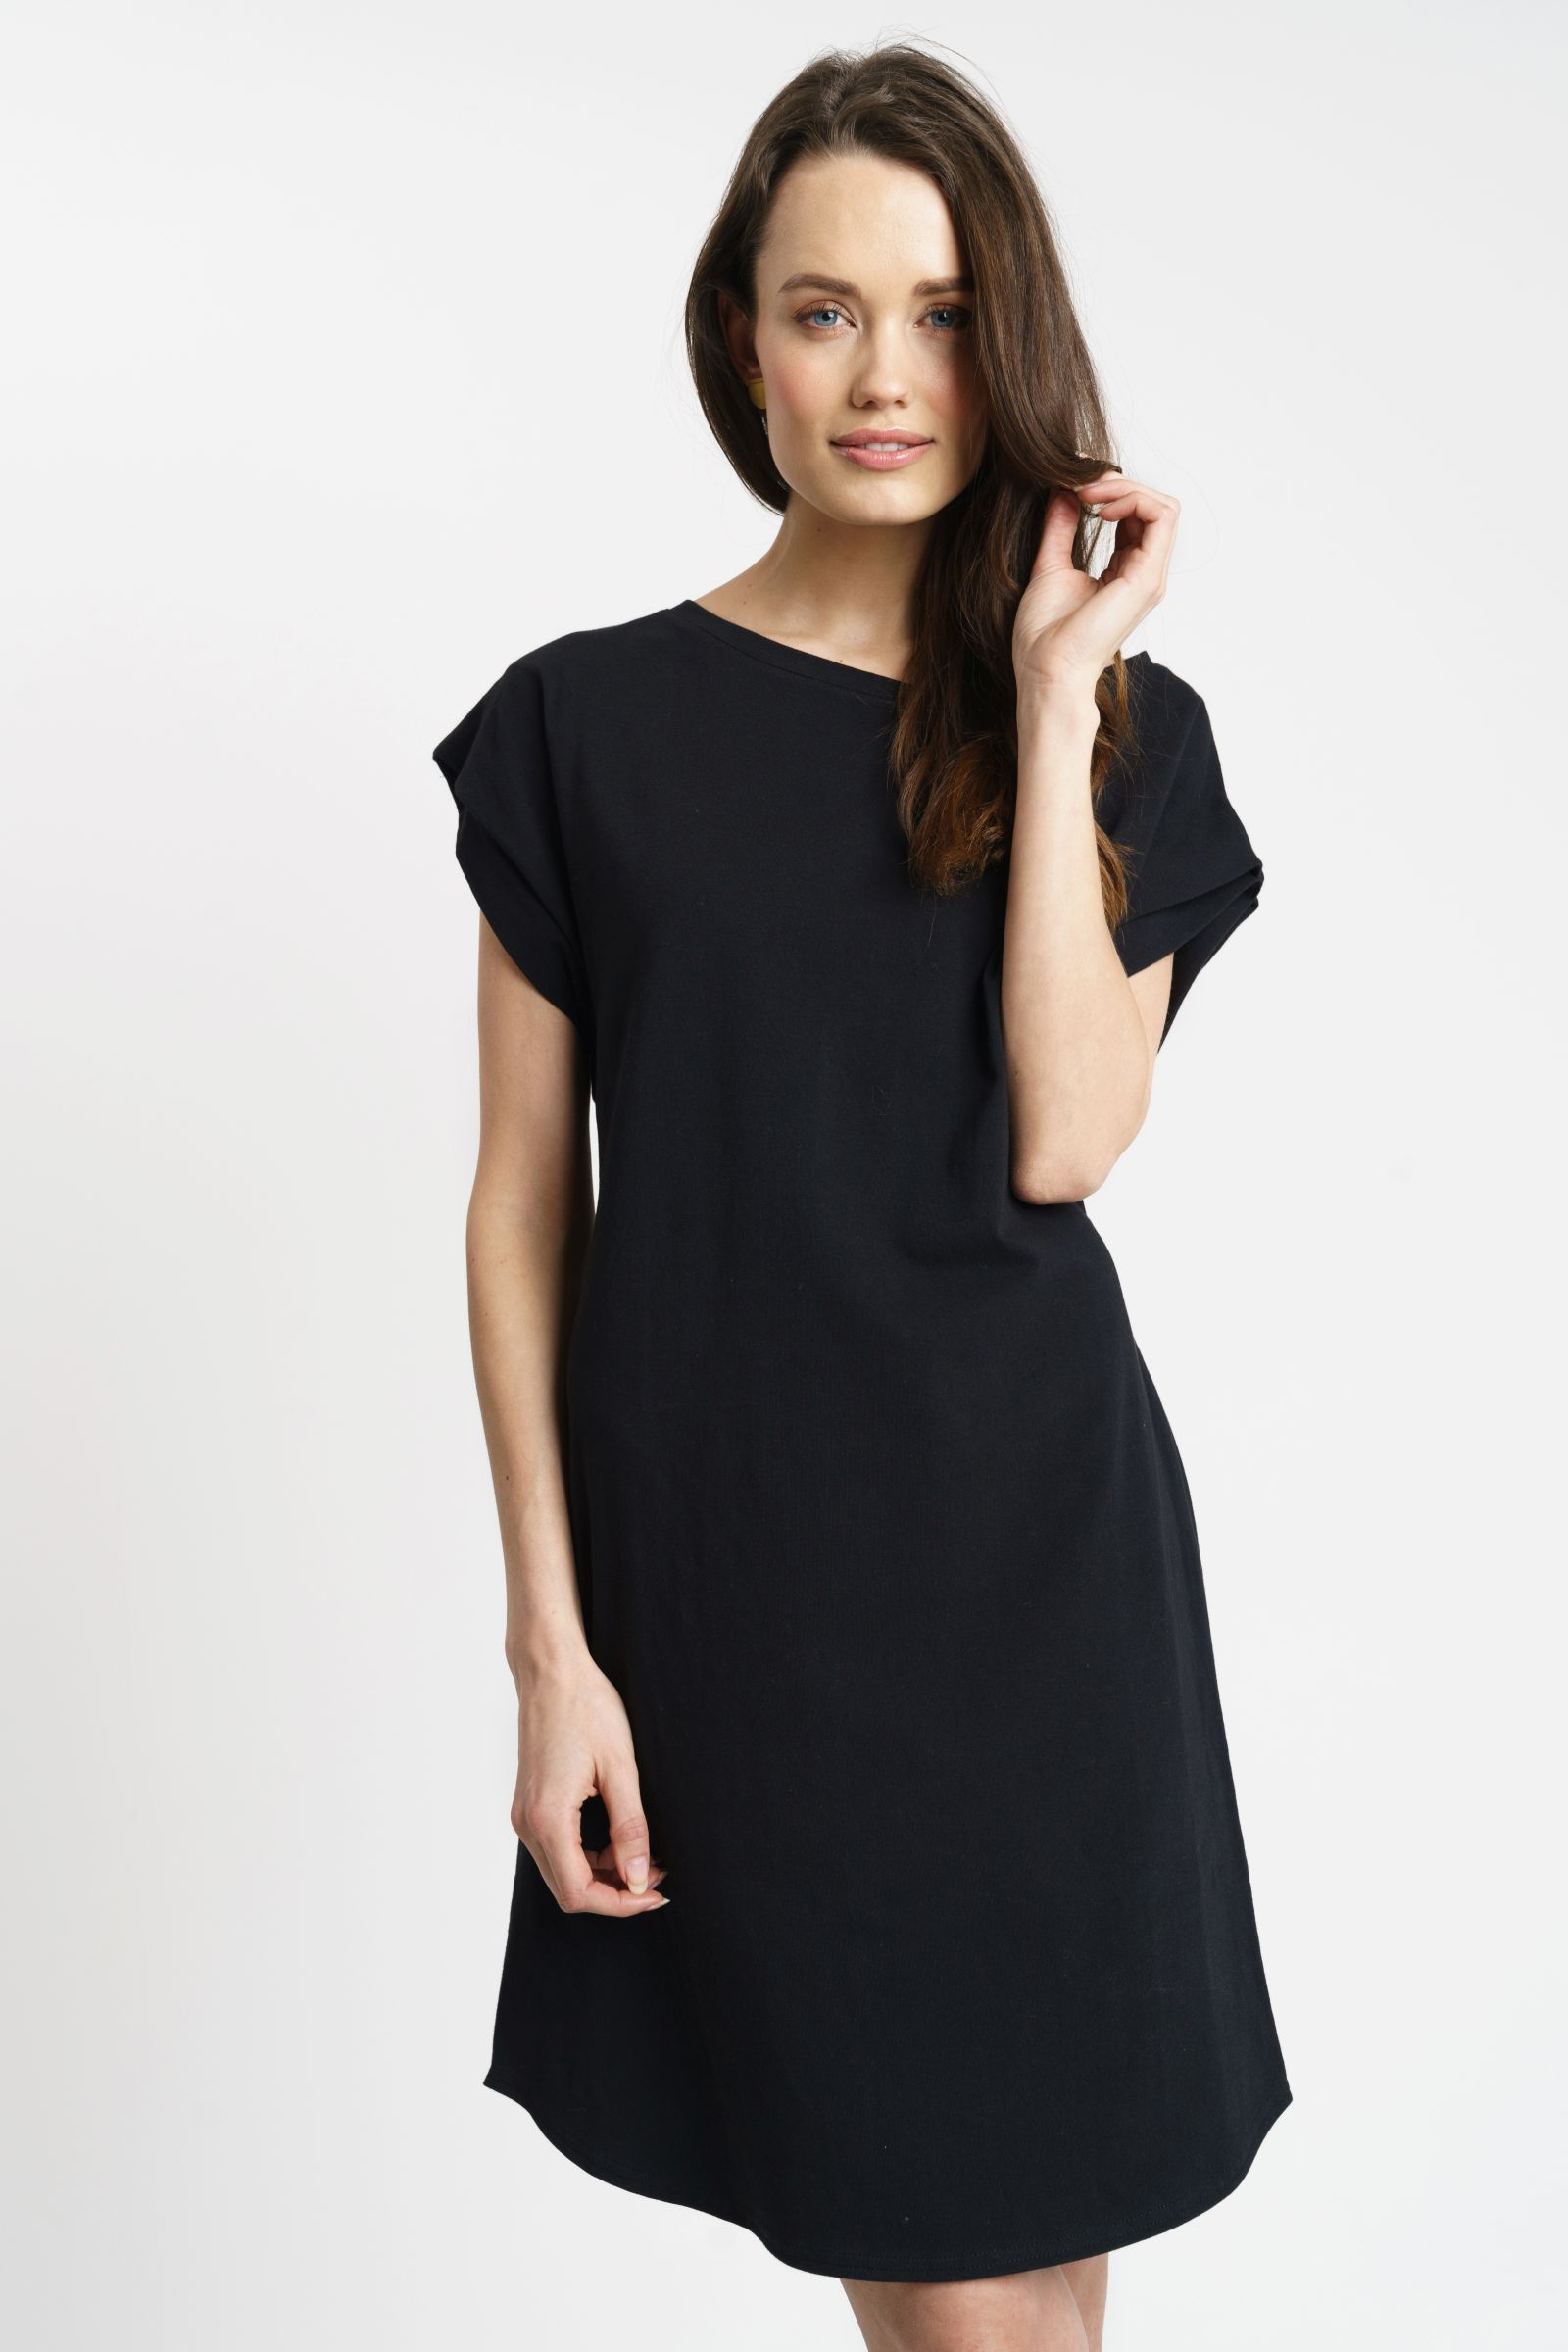 ELLIE DRESS cotton black  Modestil, Schwarzes kleid knielang, Kleider